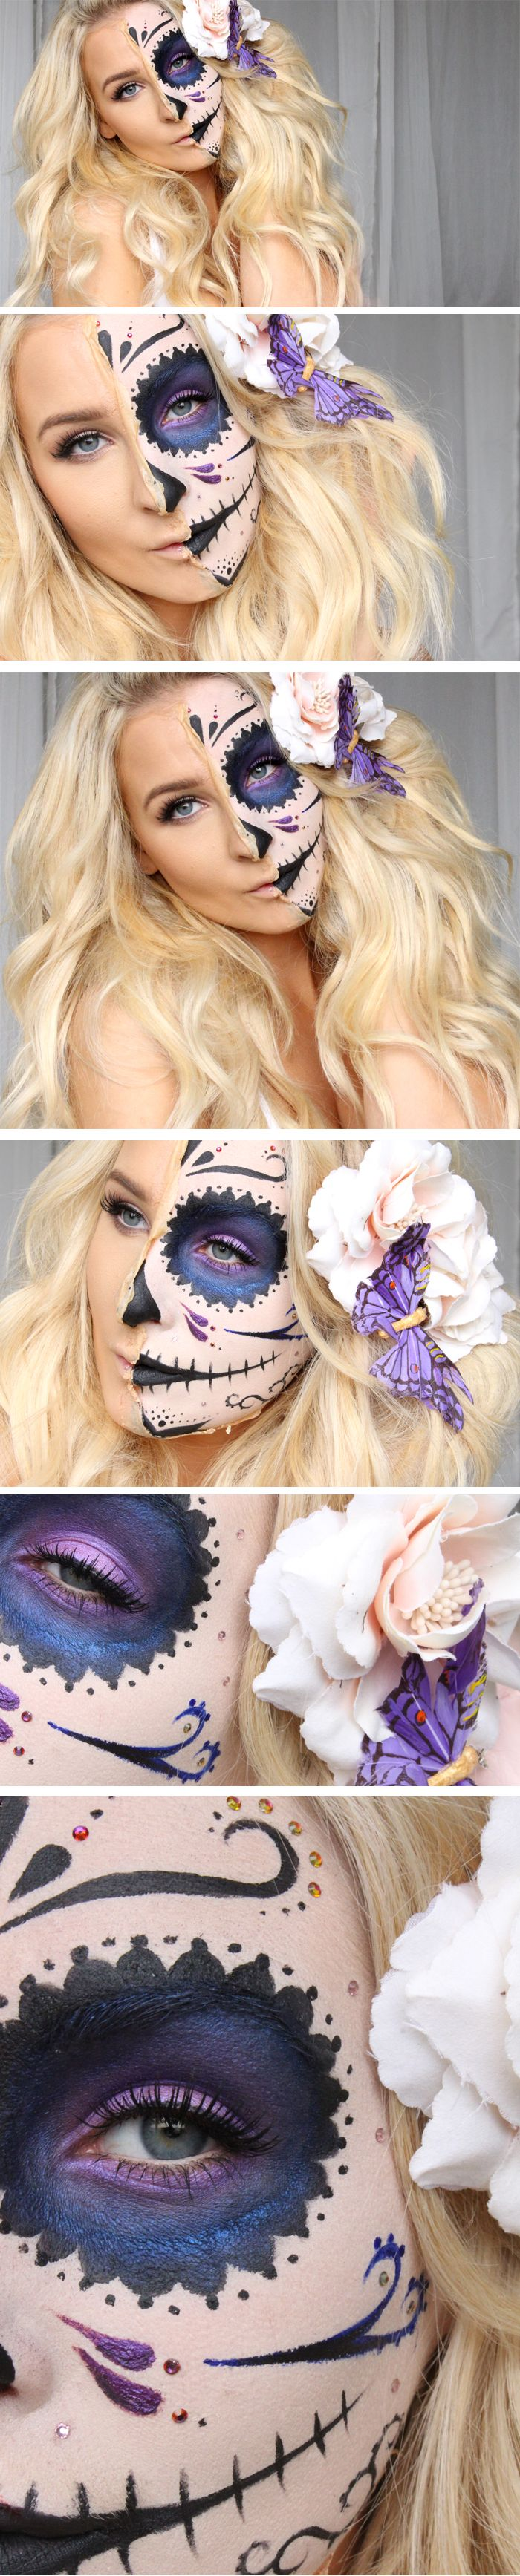 "HALLOWEEN TUTORIAL - HALF SUGAR SKULL ""under my skin"" MAKEUP"